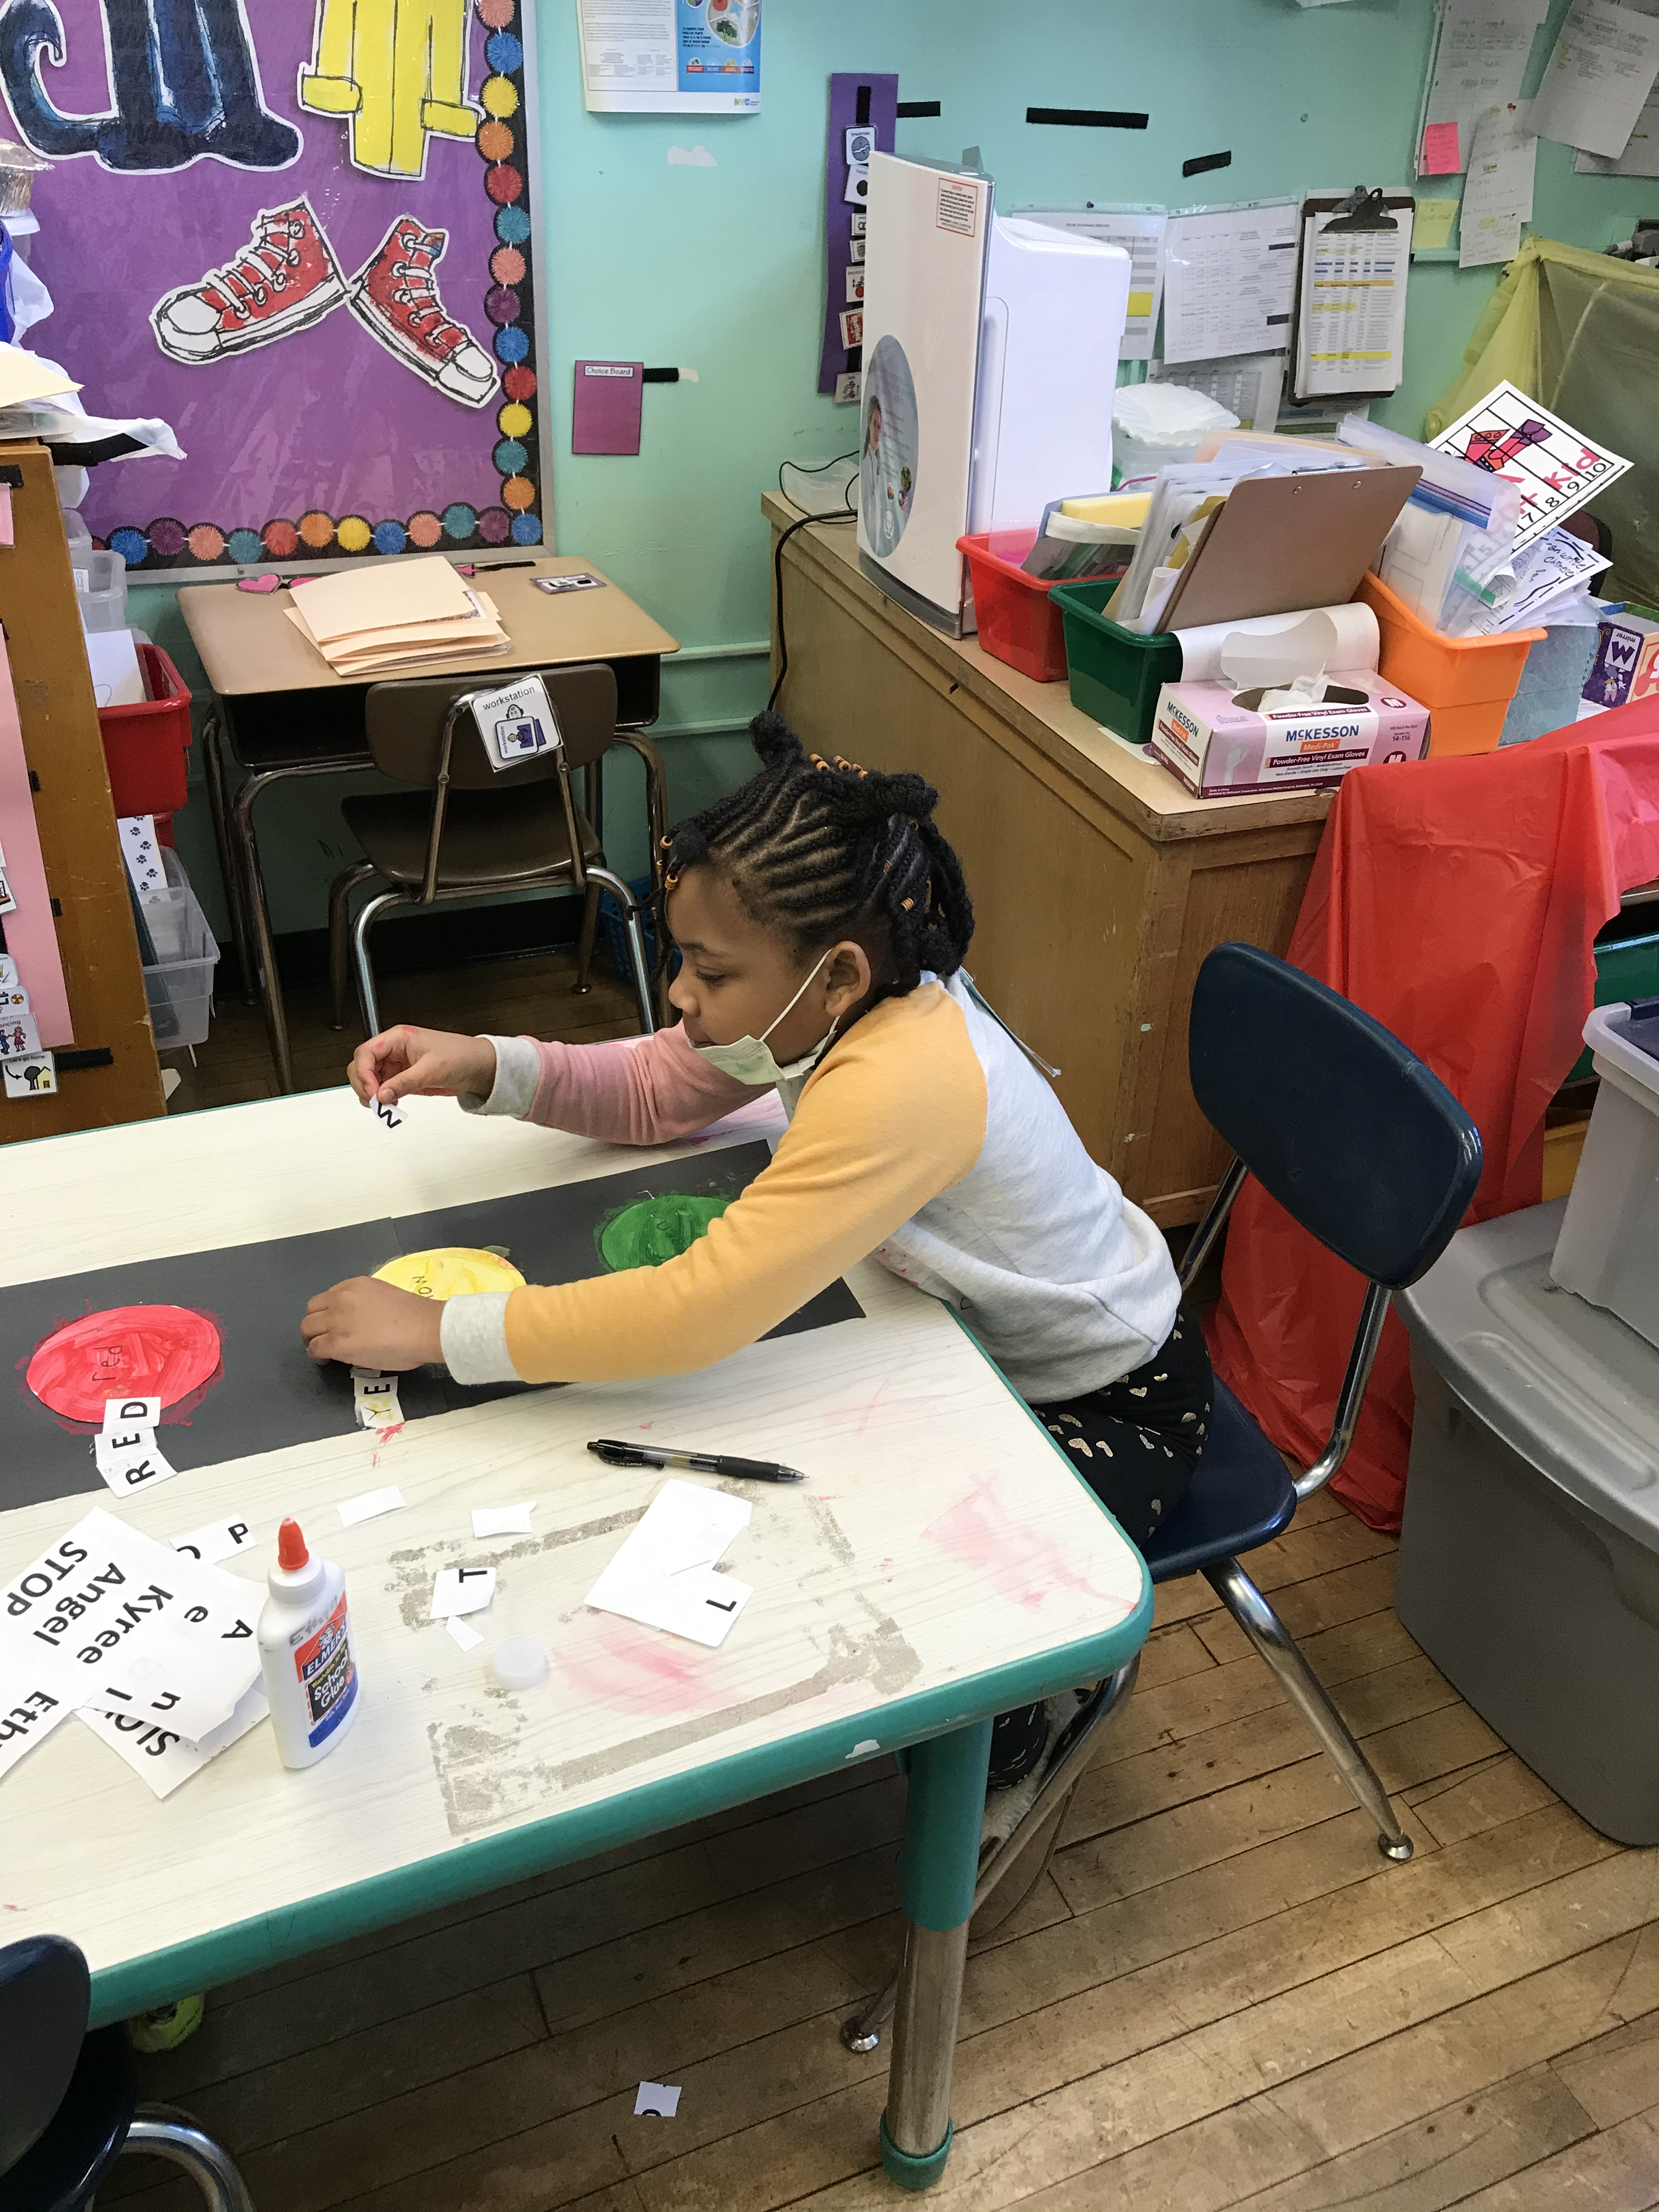 Child working on BLM activitiy